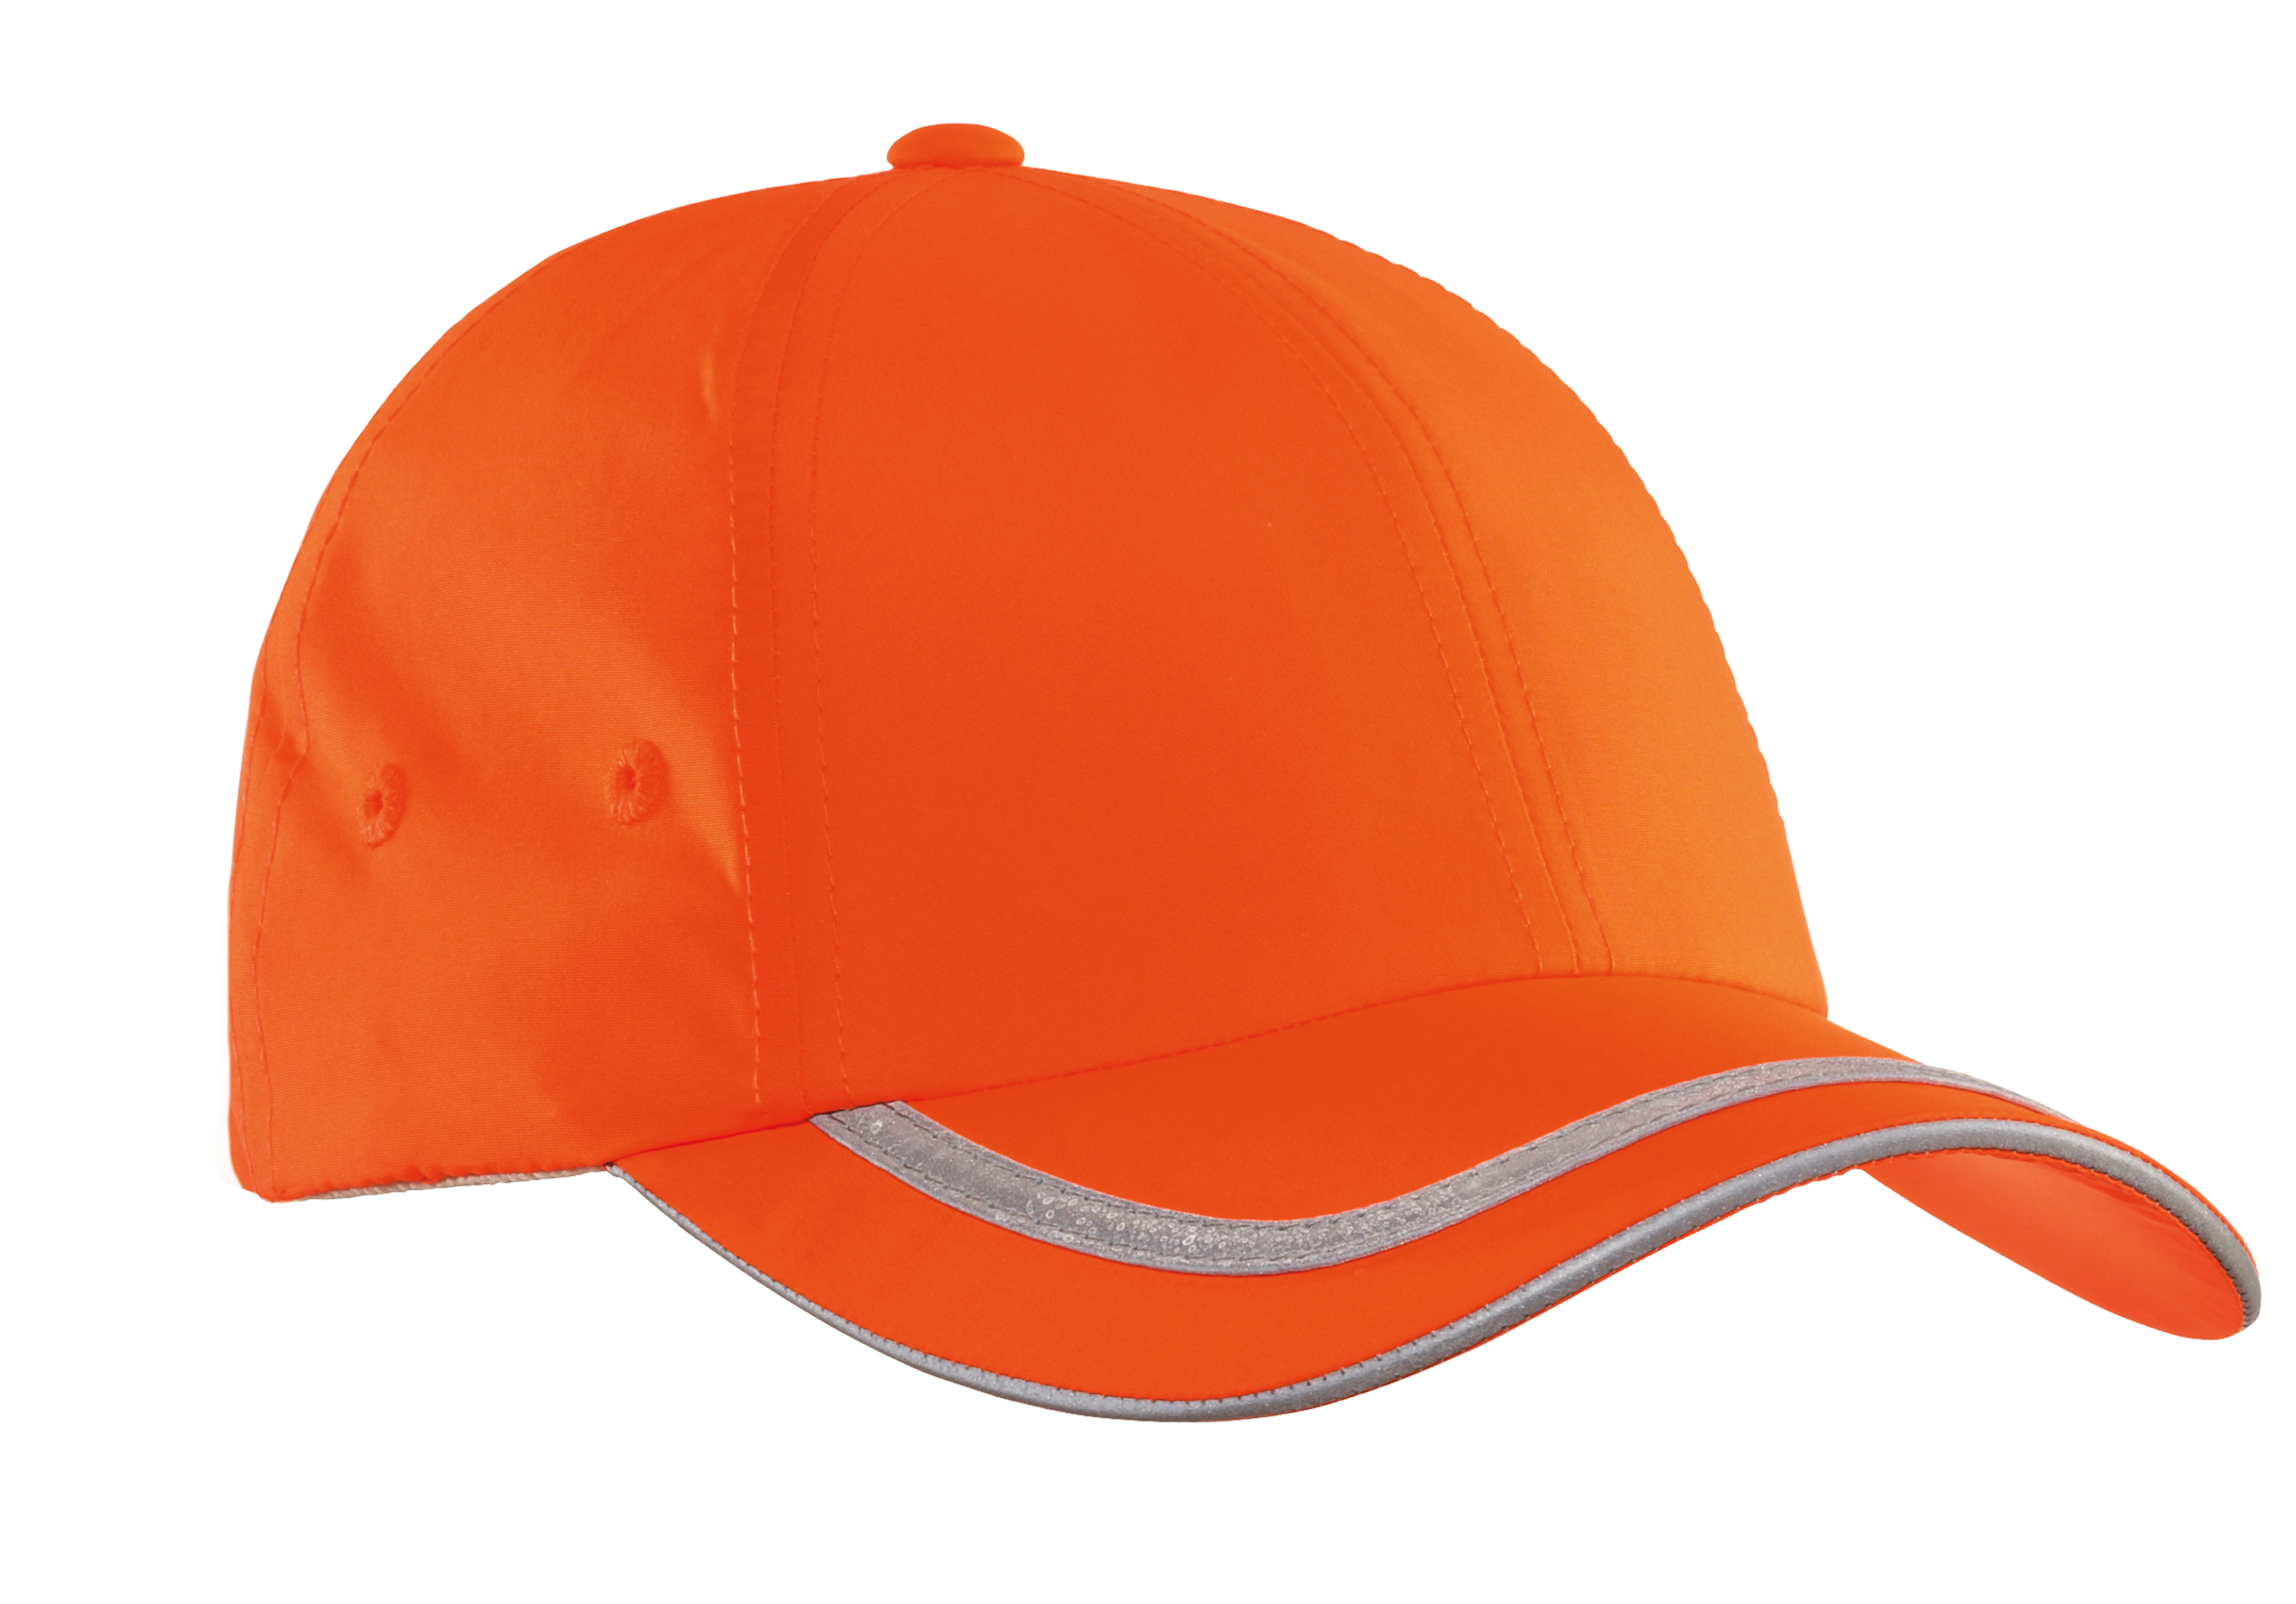 safety hat orange